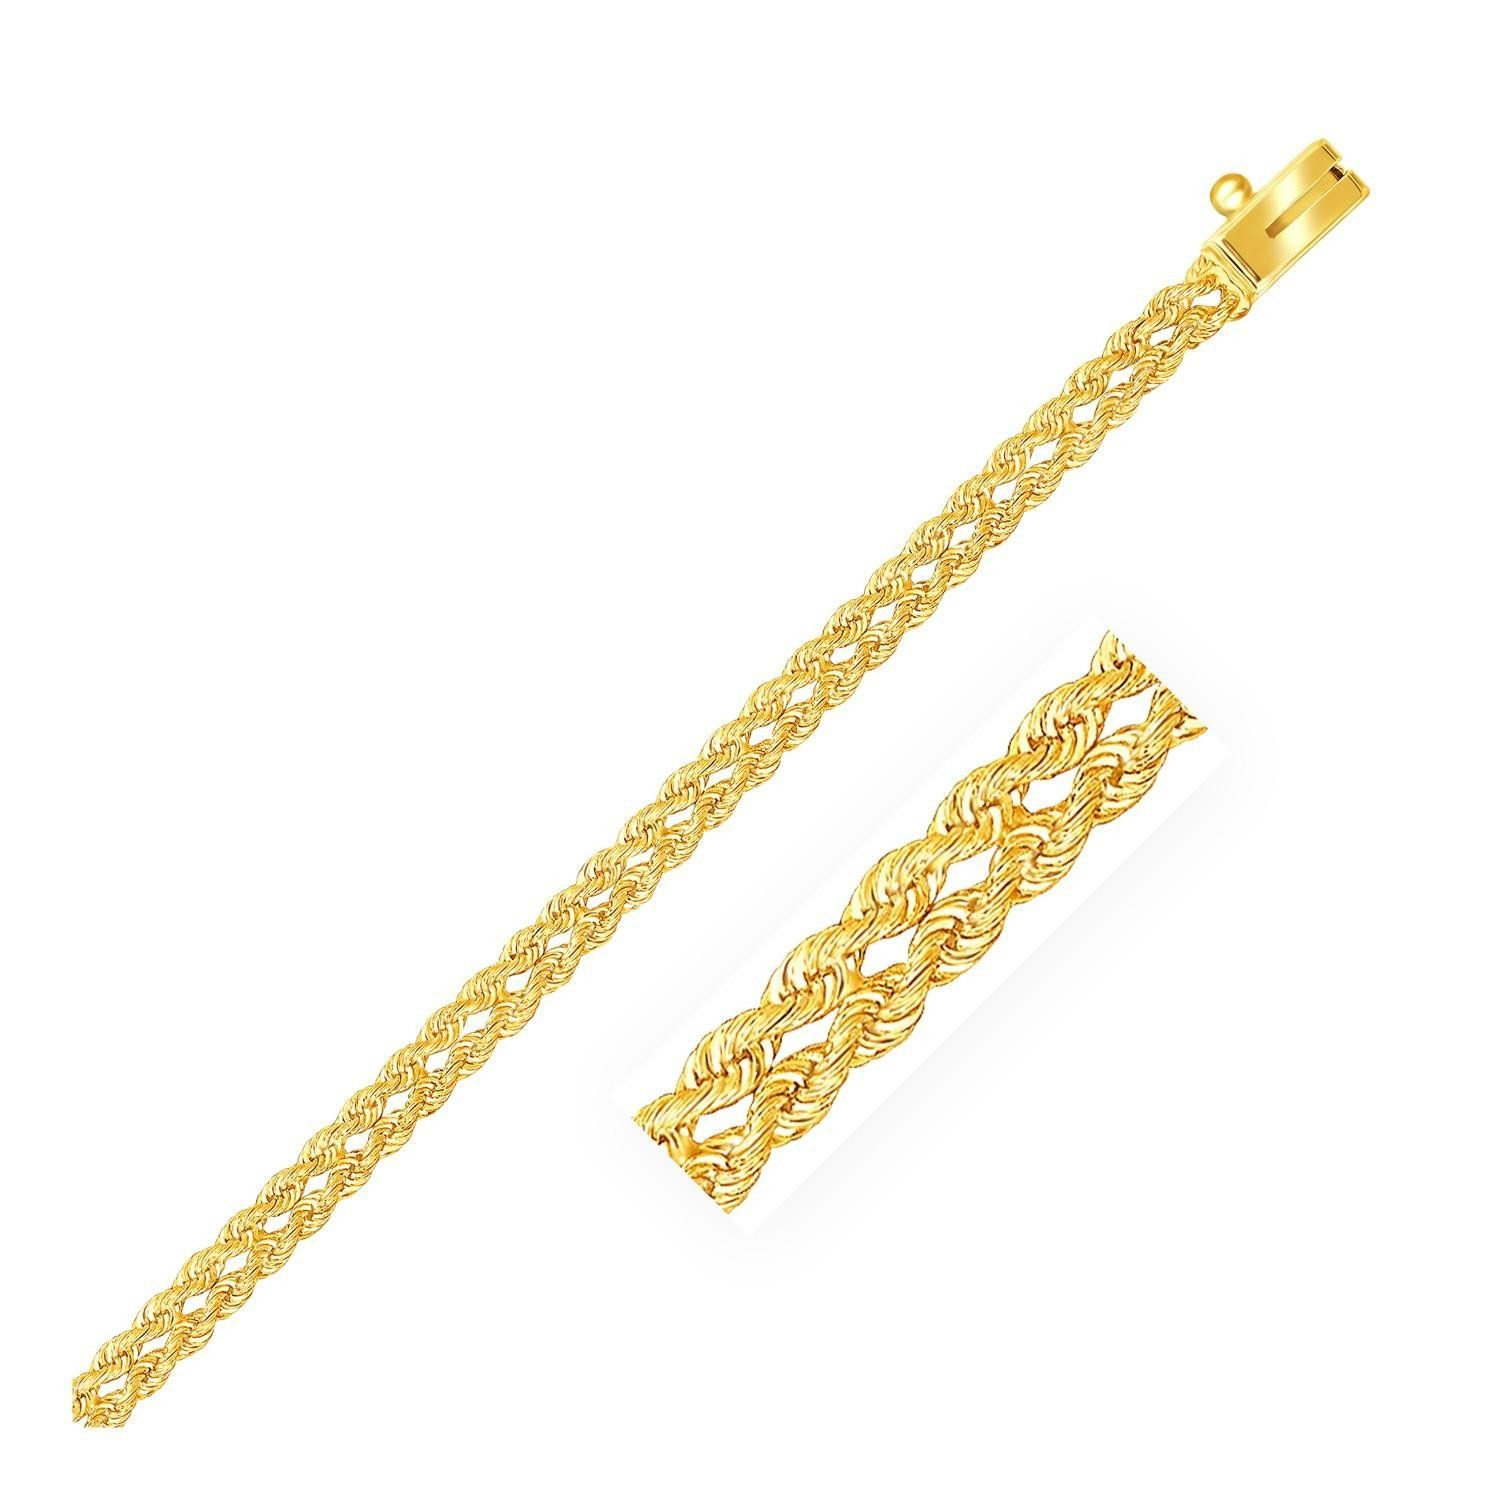 mm k yellow gold two row rope bracelet products pinterest